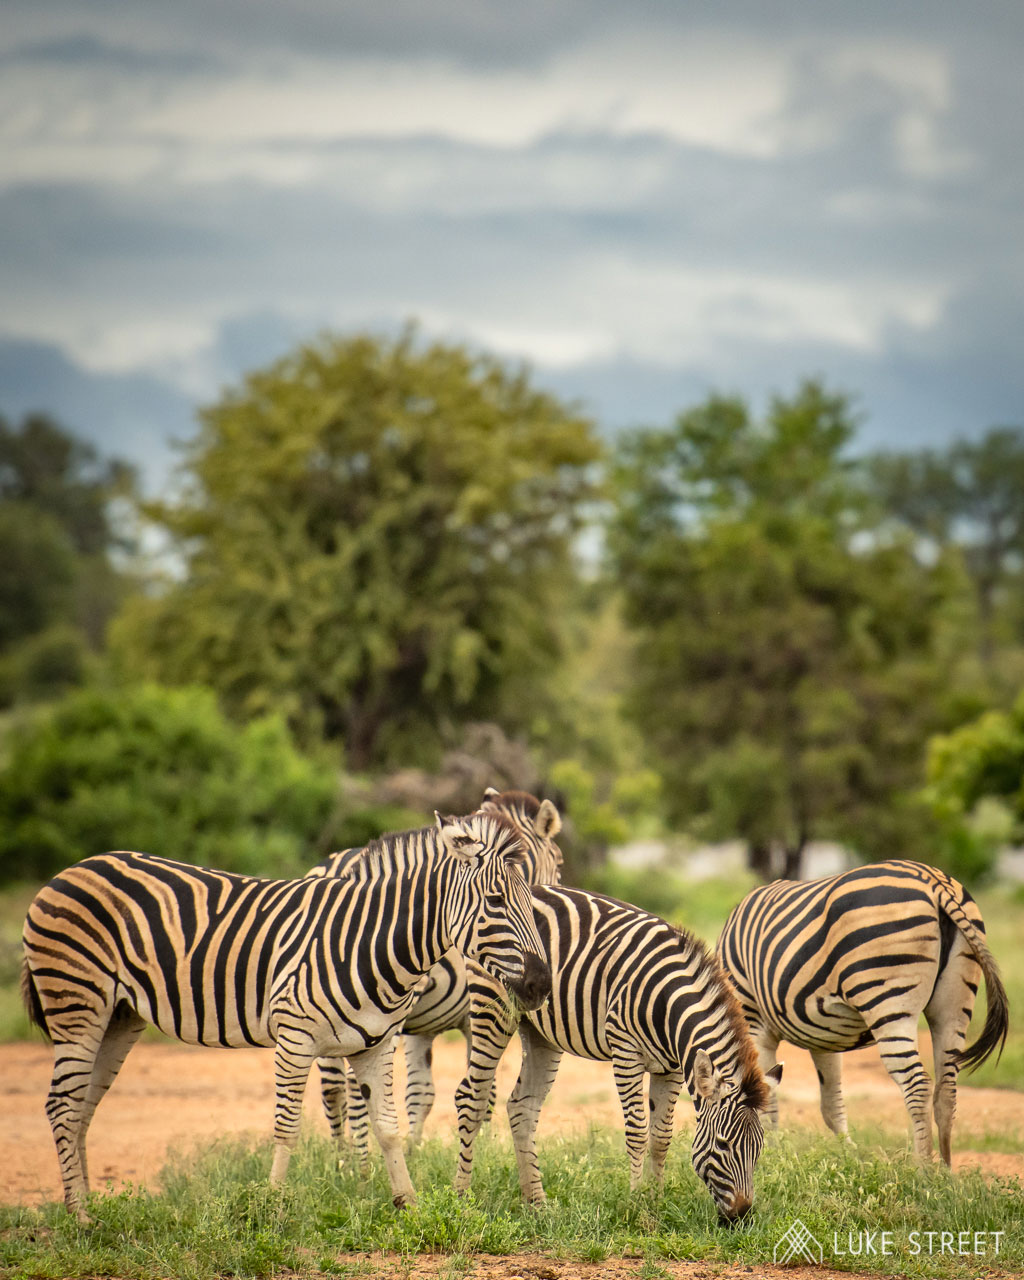 Tanda Tula - zebras eating grass in the Greater Kruger